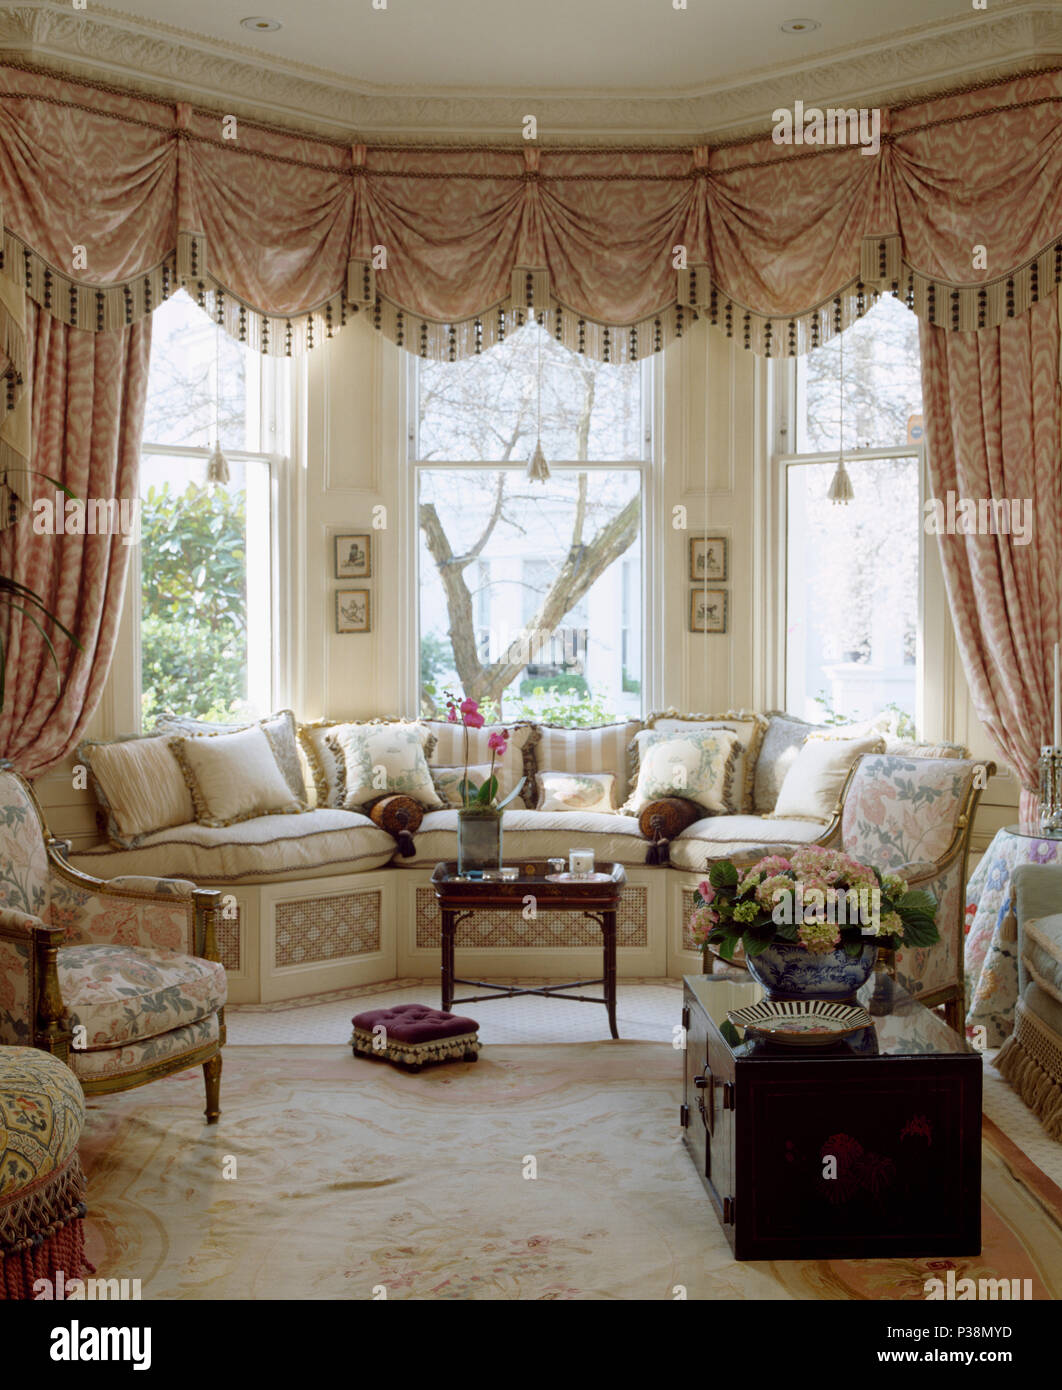 bay window curtains stock photos bay window curtains stock images alamy. Black Bedroom Furniture Sets. Home Design Ideas